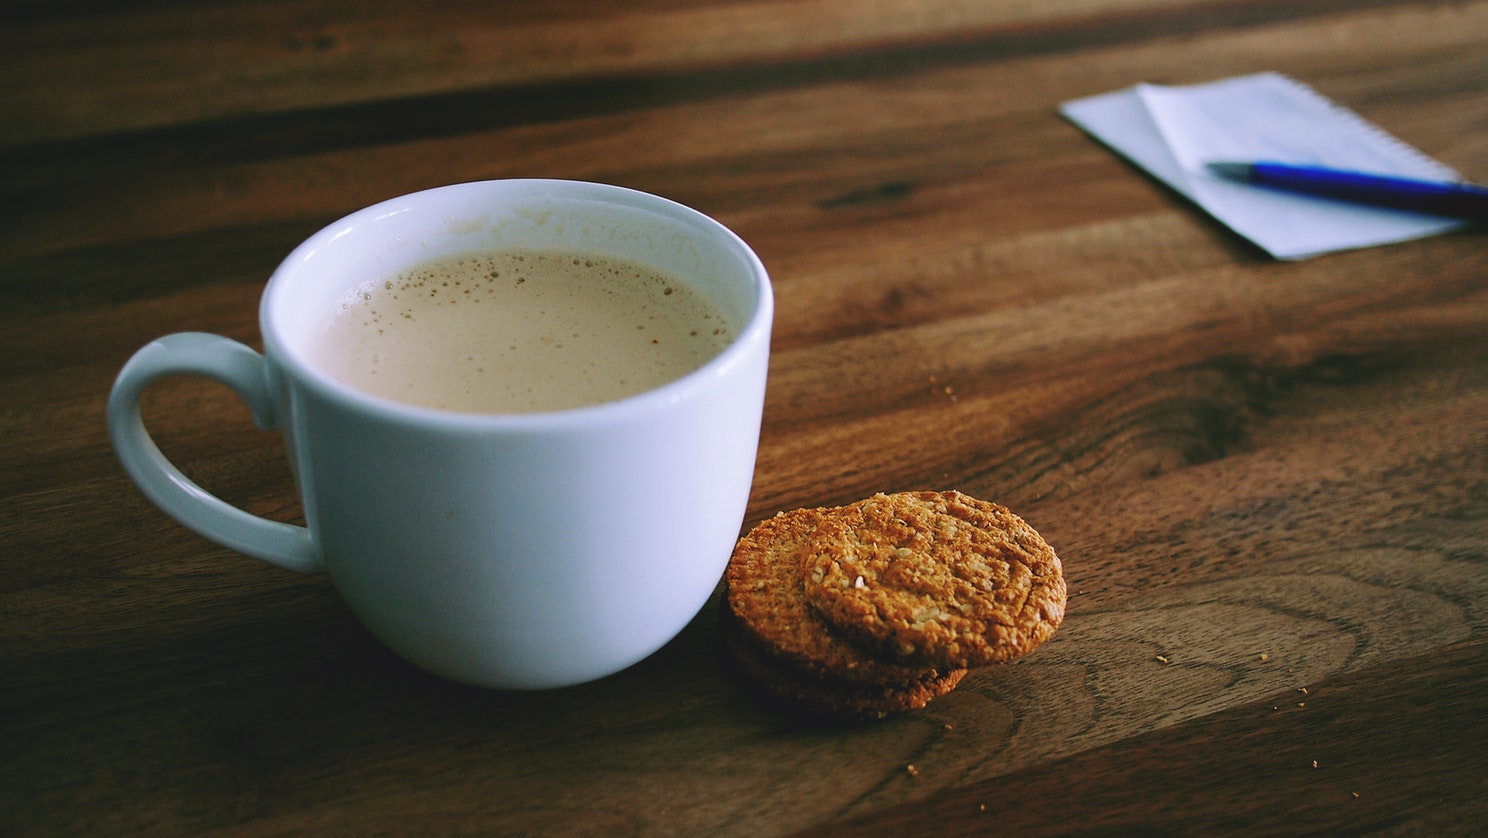 Coffe cup with cookies - Unsplash Moodshot